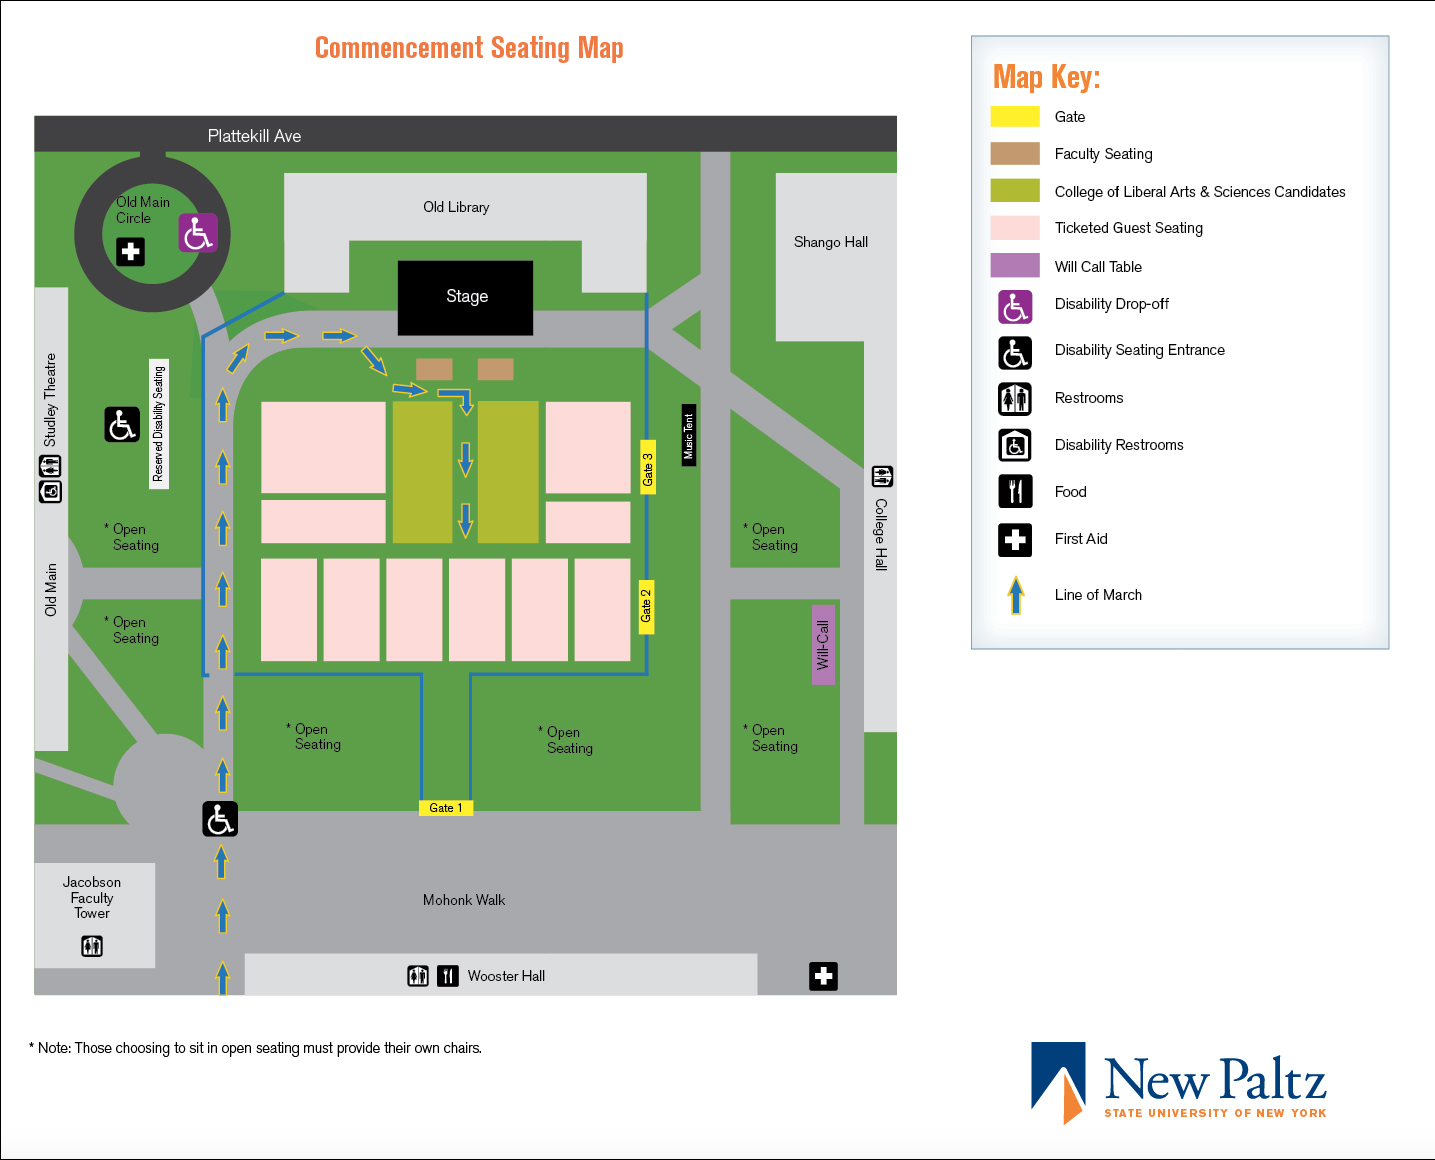 Suny New Paltz Campus Map SUNY New Paltz   Commencement